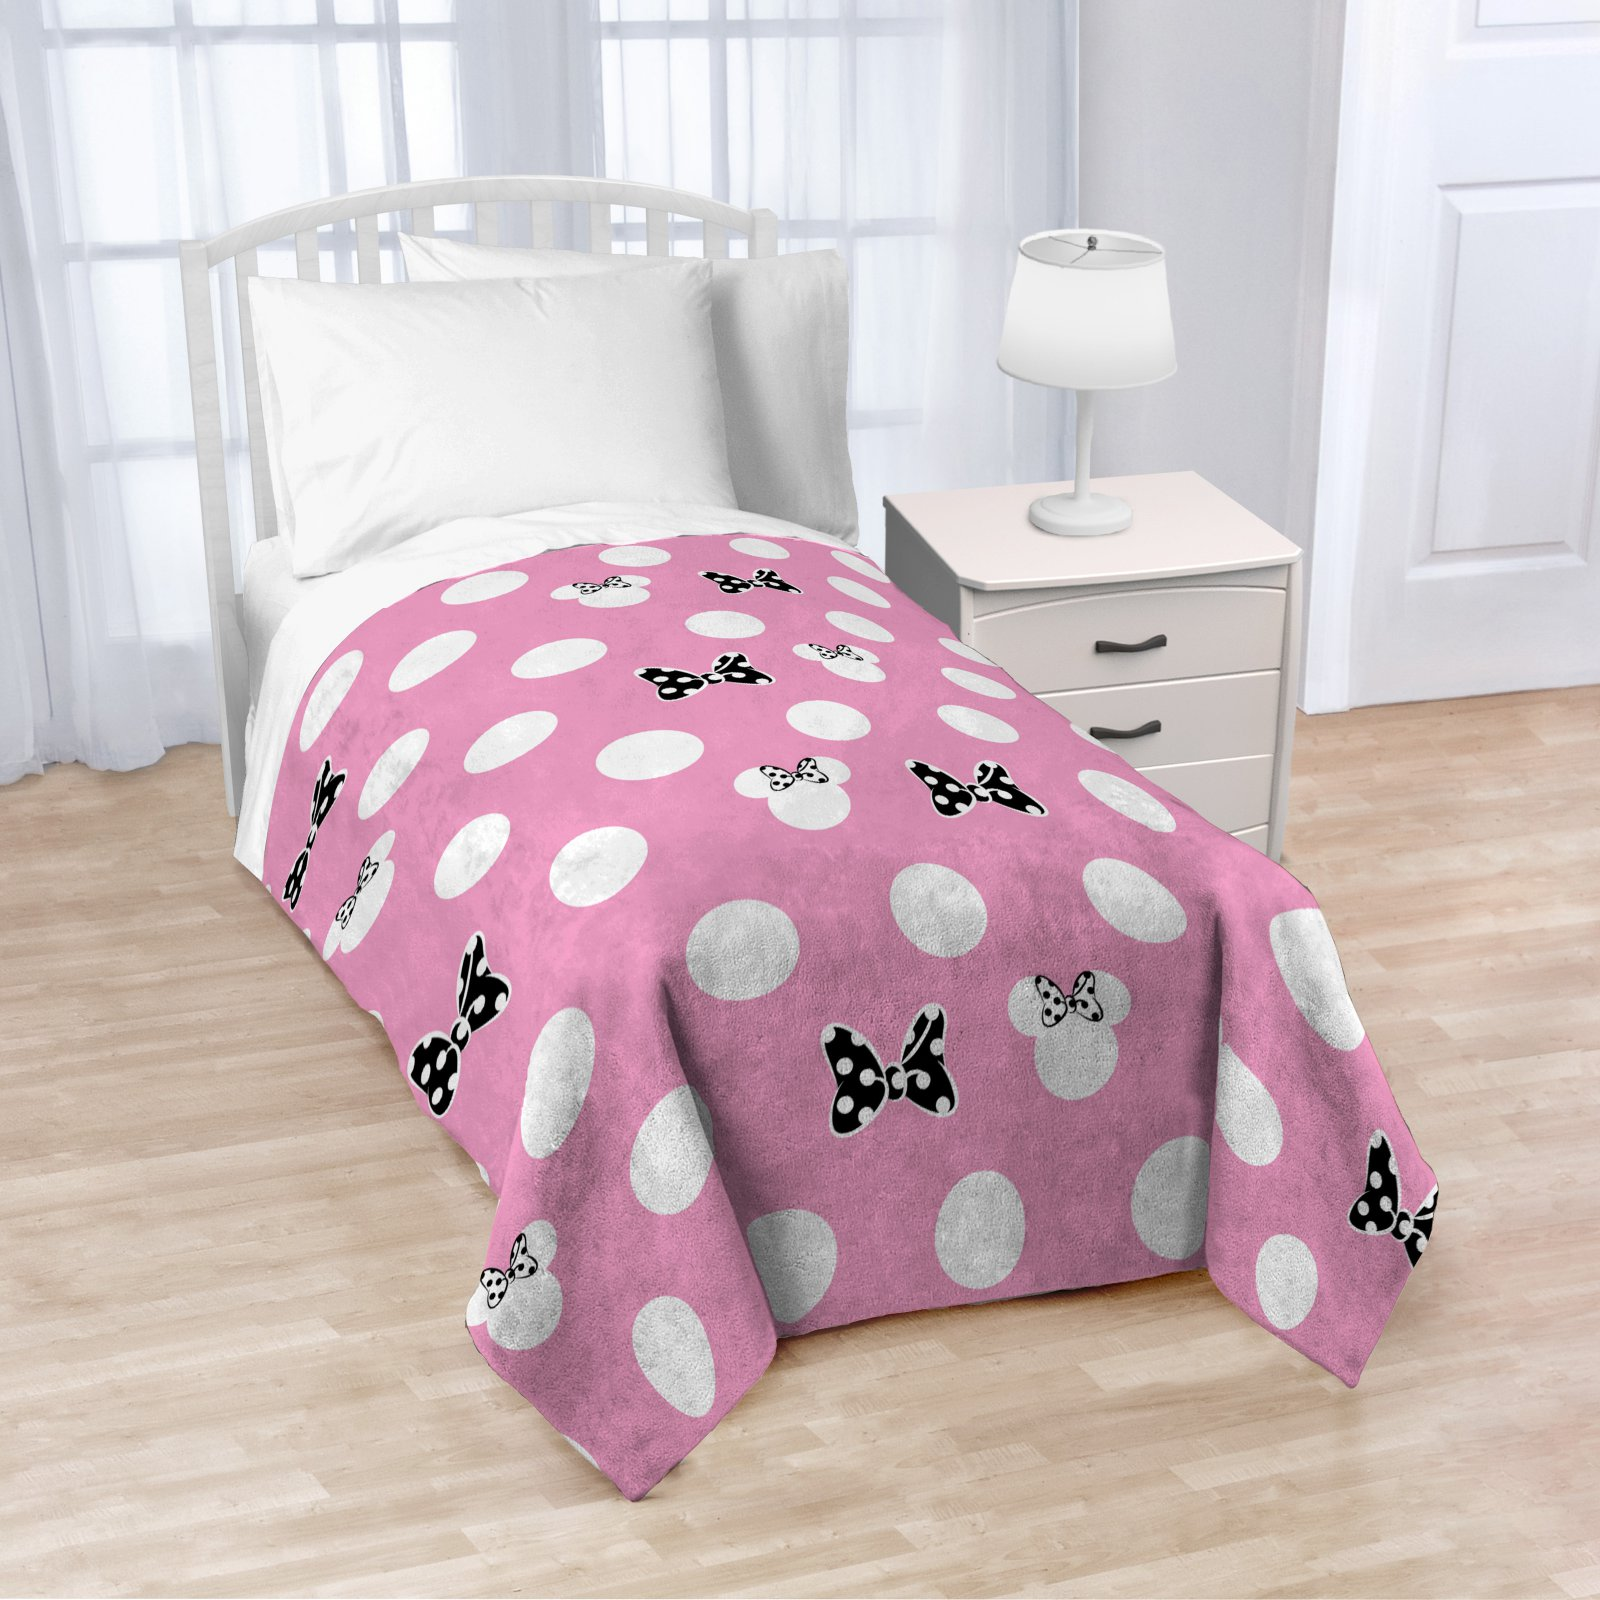 Disney Minnie Mouse XOXO Throw by Disney